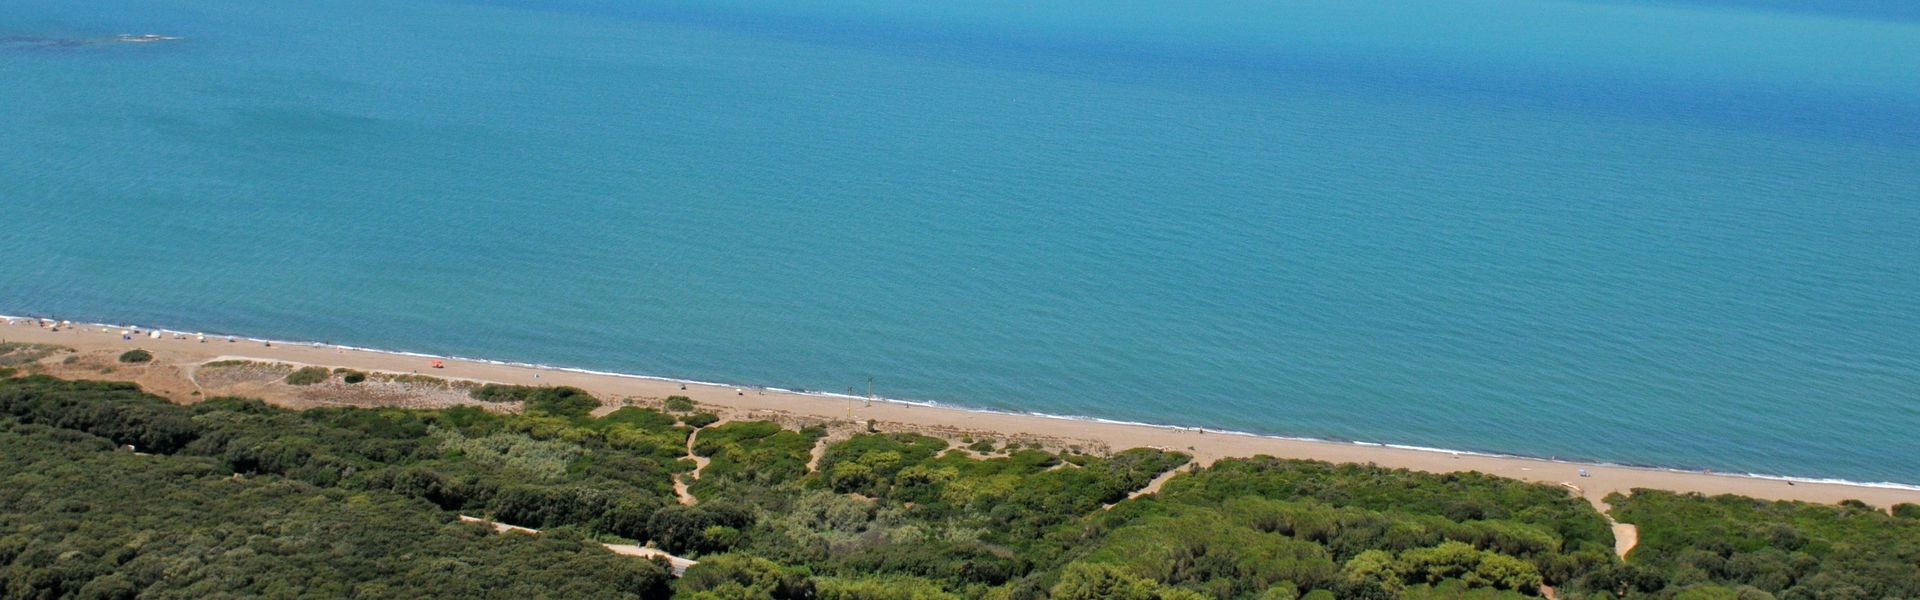 Campings in Bibbona / Marina di Bibbona